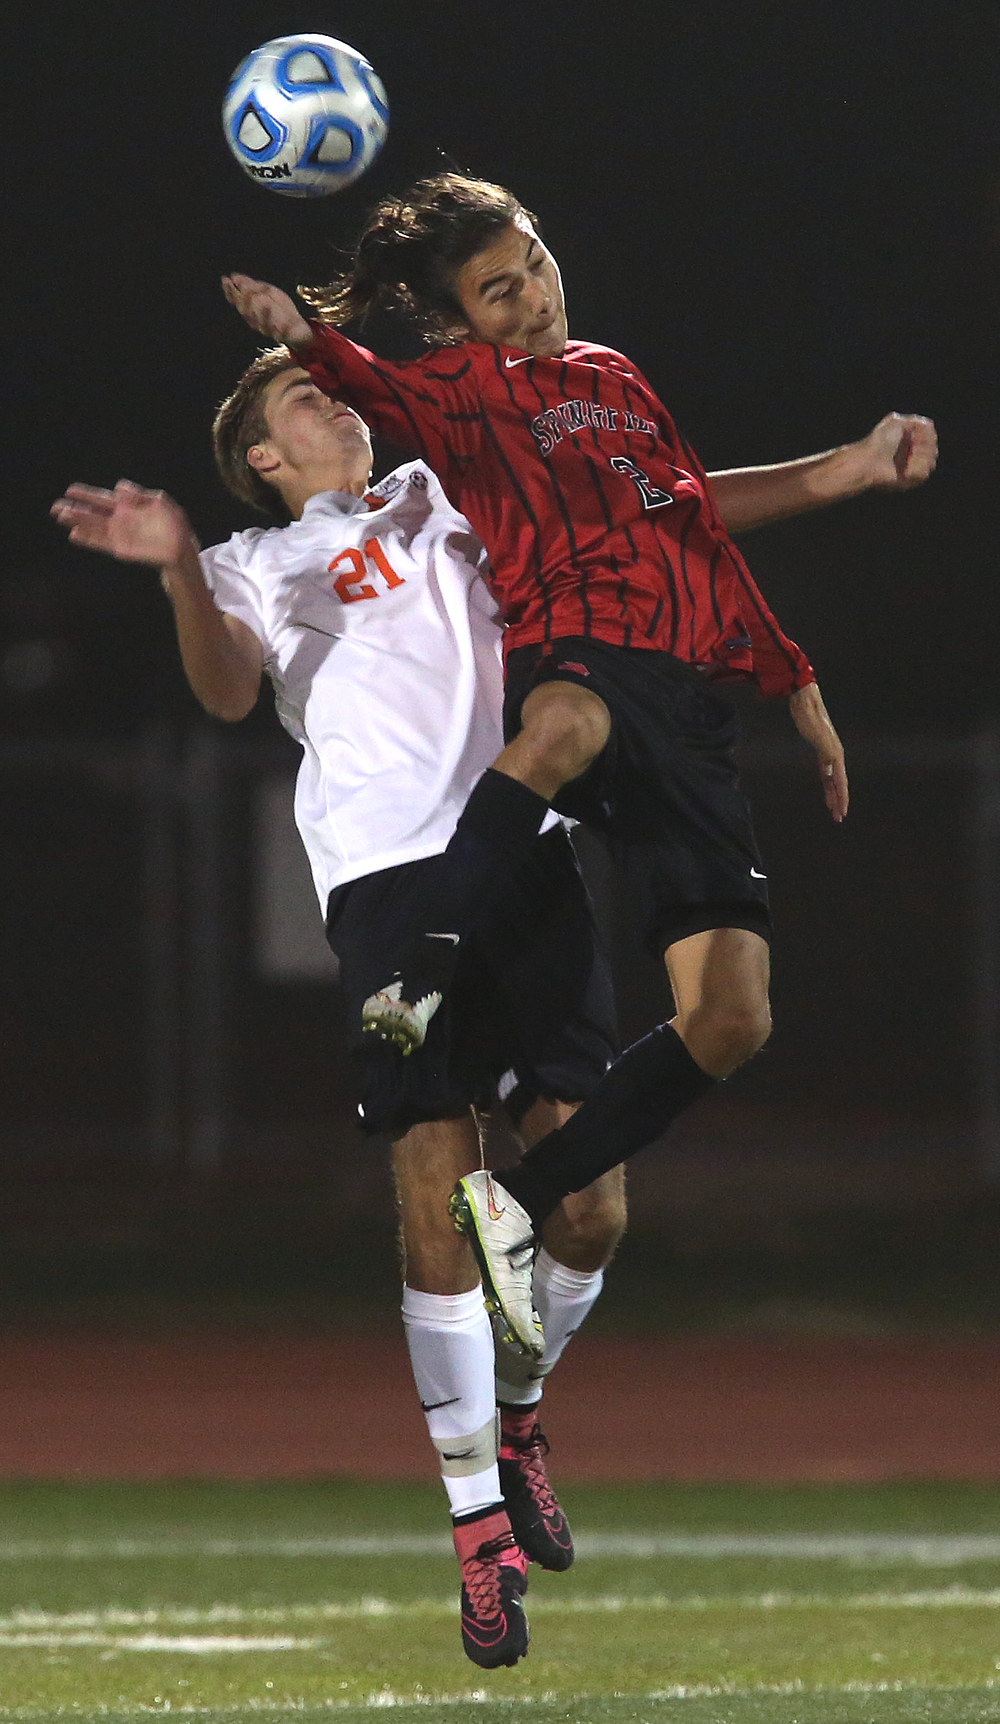 Going after a header are Springfield player Nate Cheung and Waterloo's Drew Marshall in the second period. David Spencer/The State Journal-Register